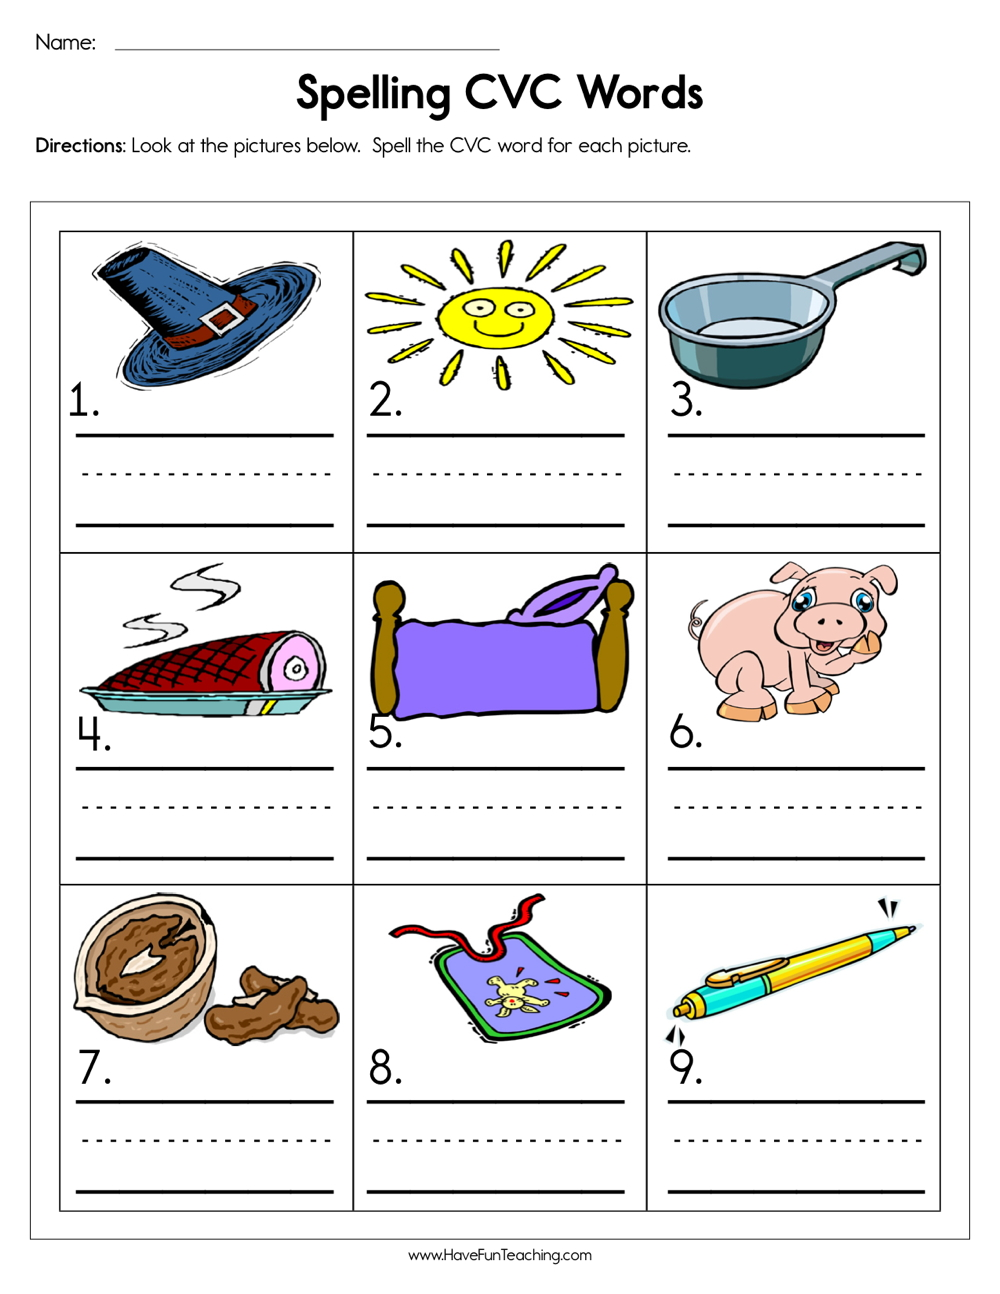 Spelling CVC Words Worksheet